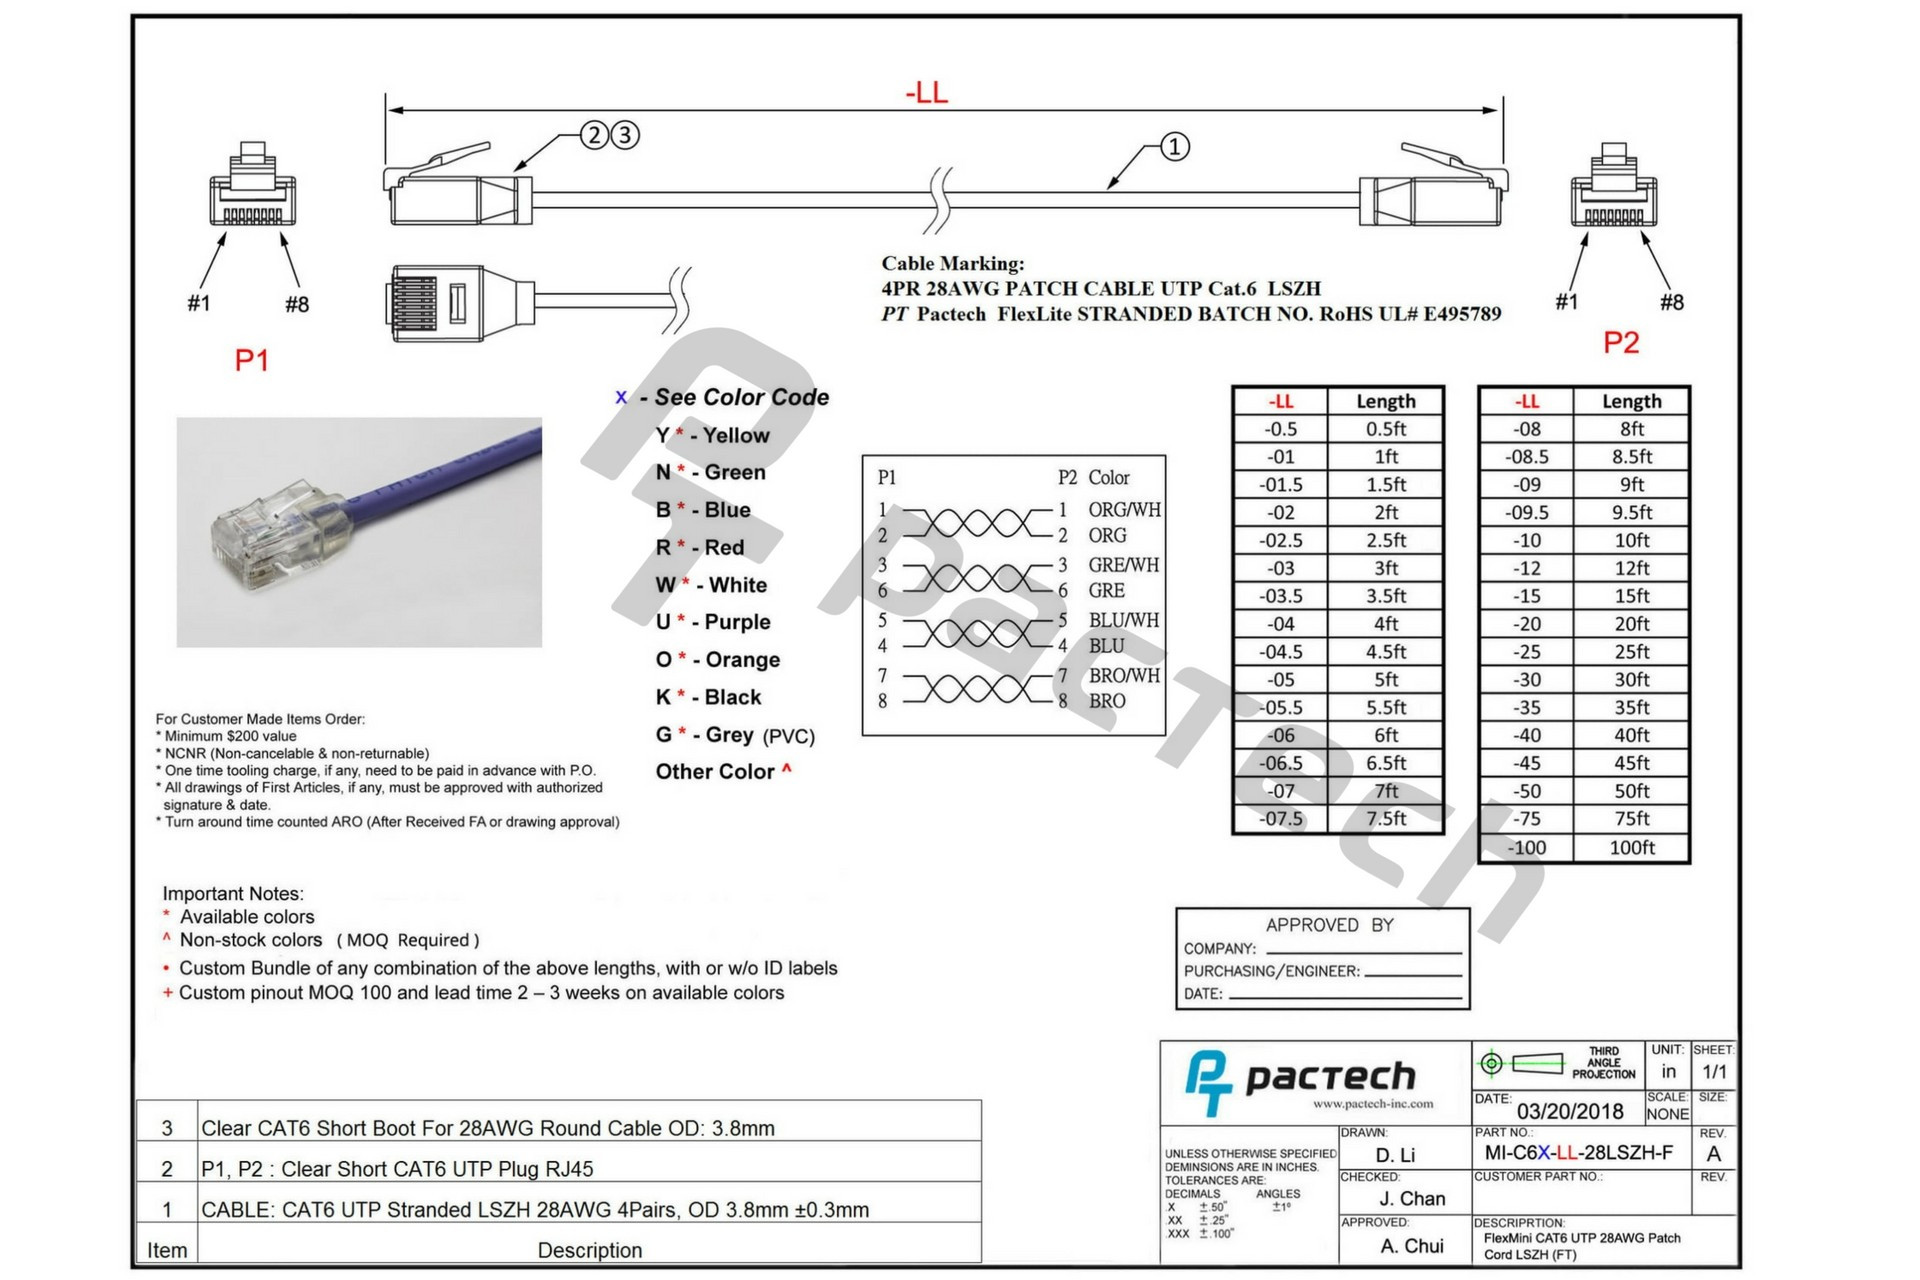 Cat6 Cable Wiring Diagram New Cat6 28awg Cable Flexmini6 6a Utp Bestronics Of Cat6 Cable Wiring Diagram